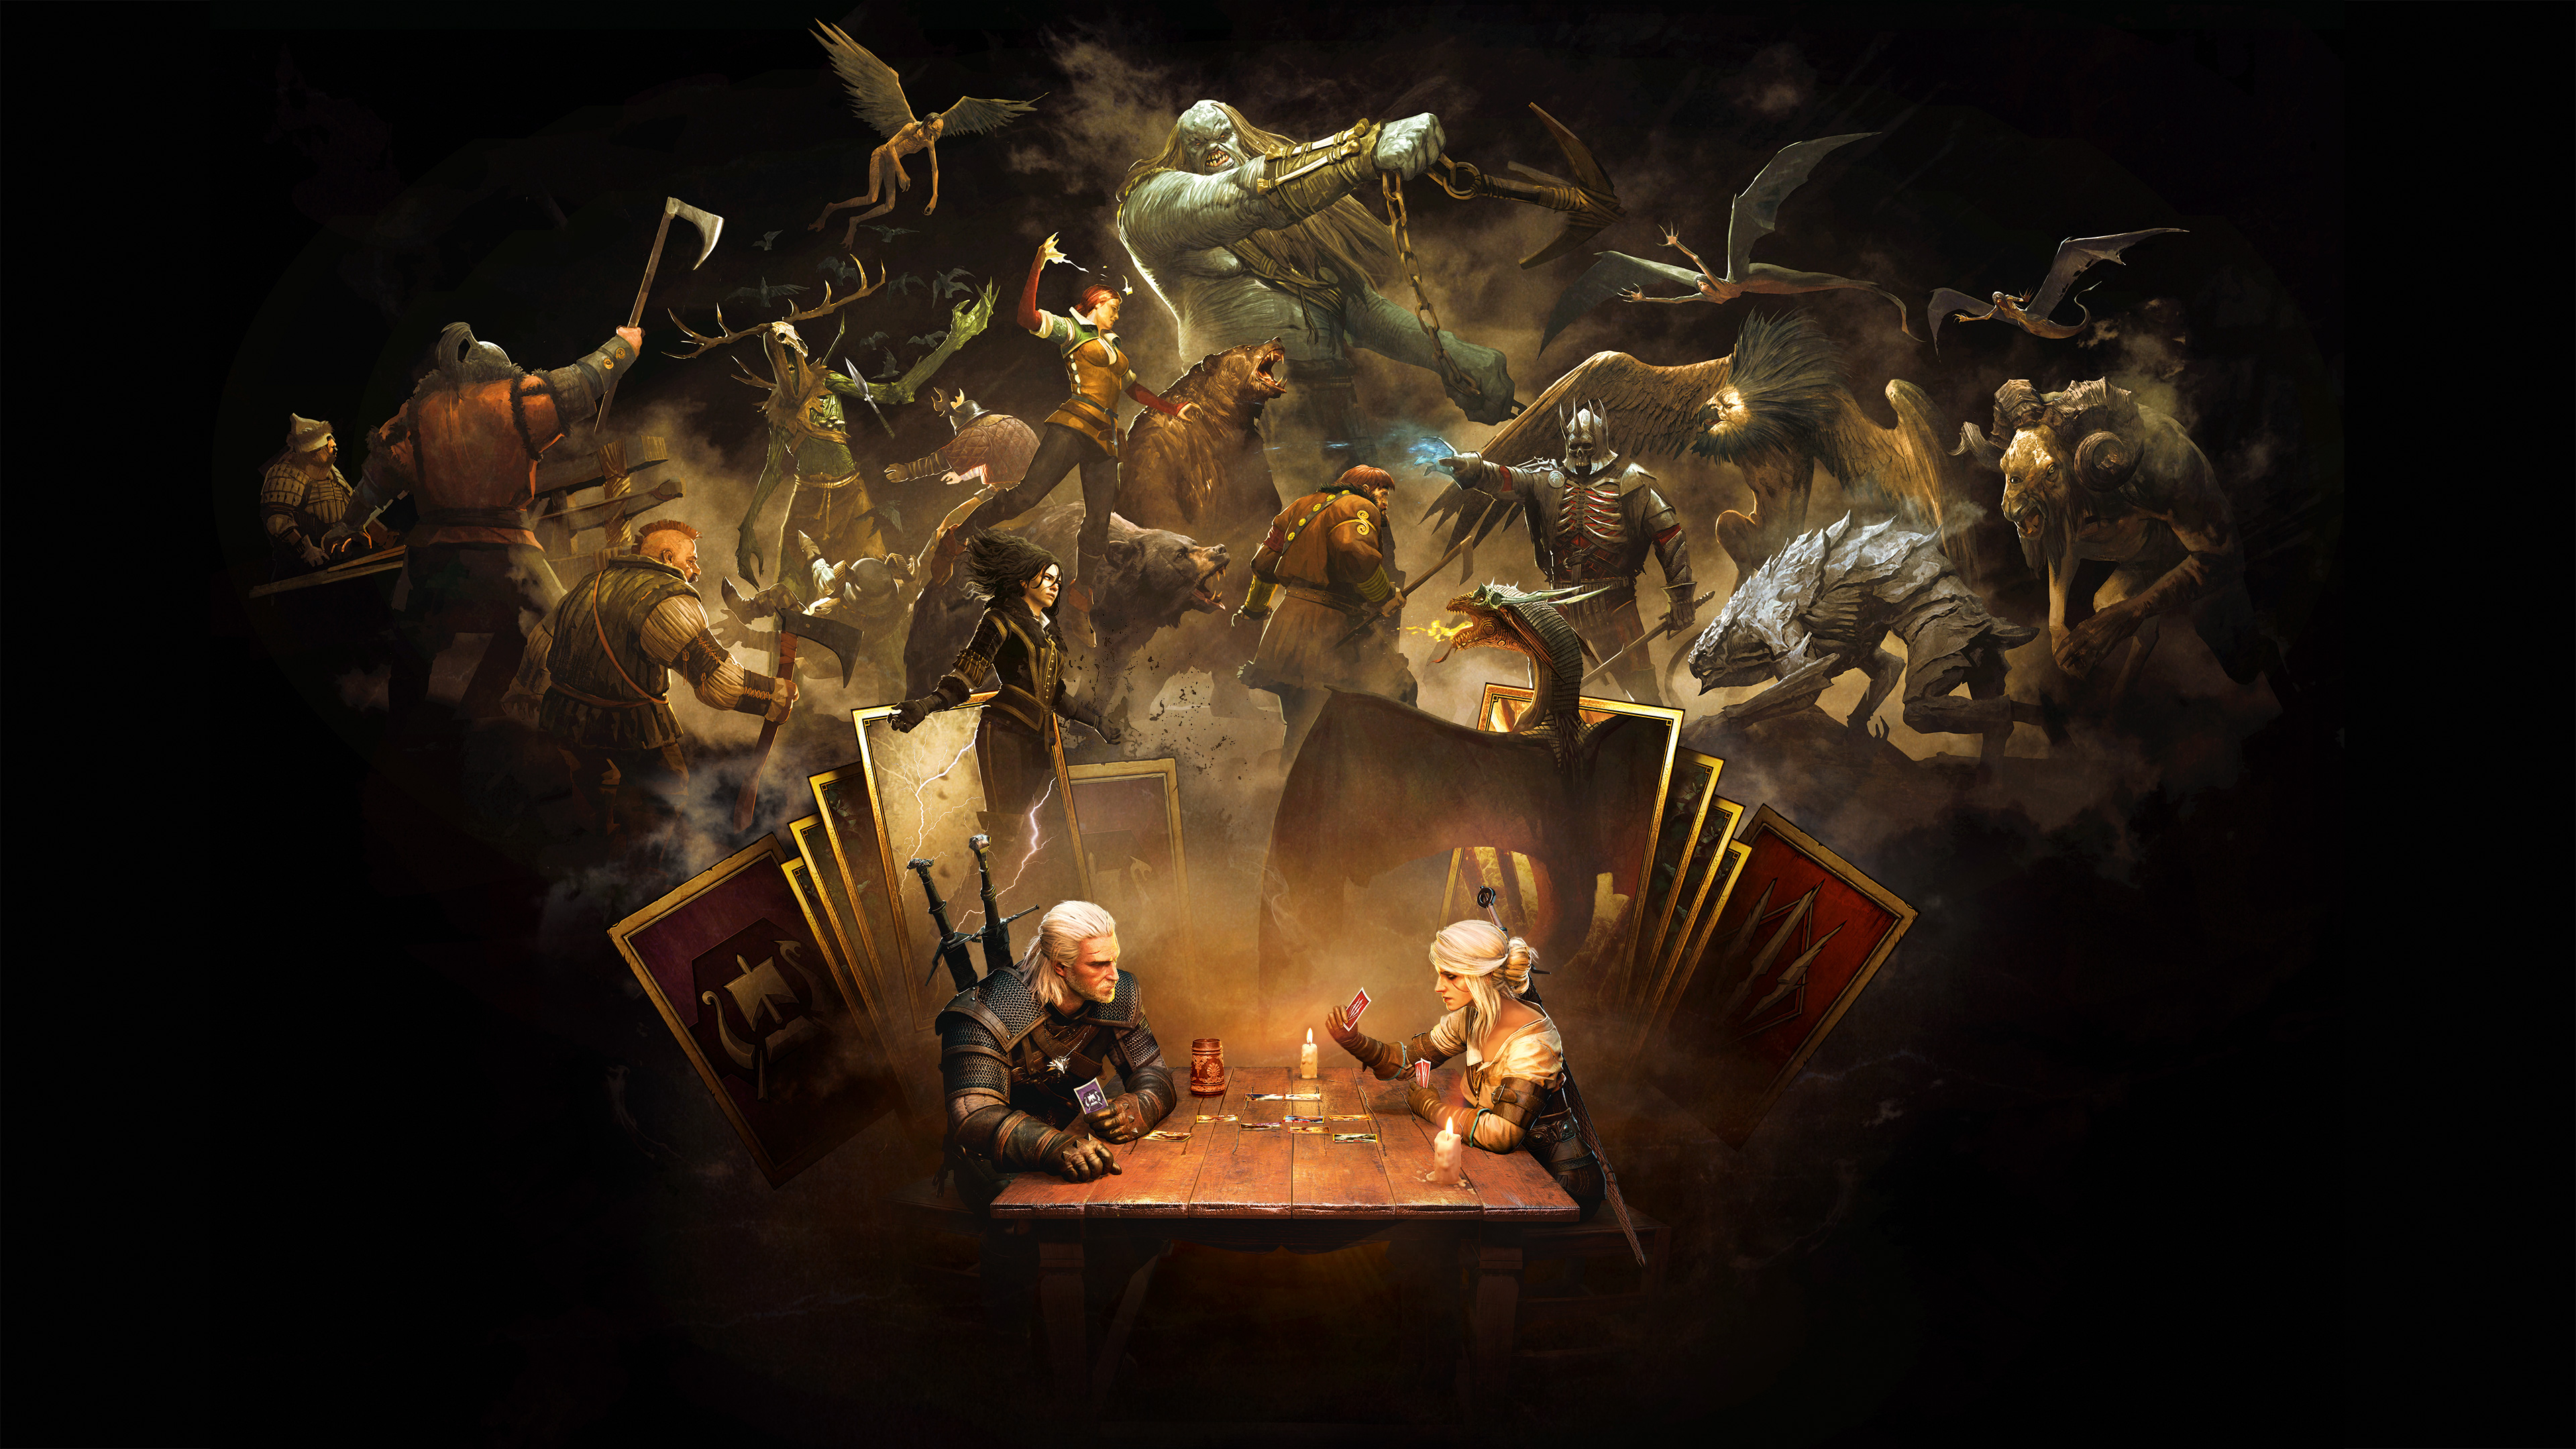 21263 Gwent images backgrounds 2019 3840x2160